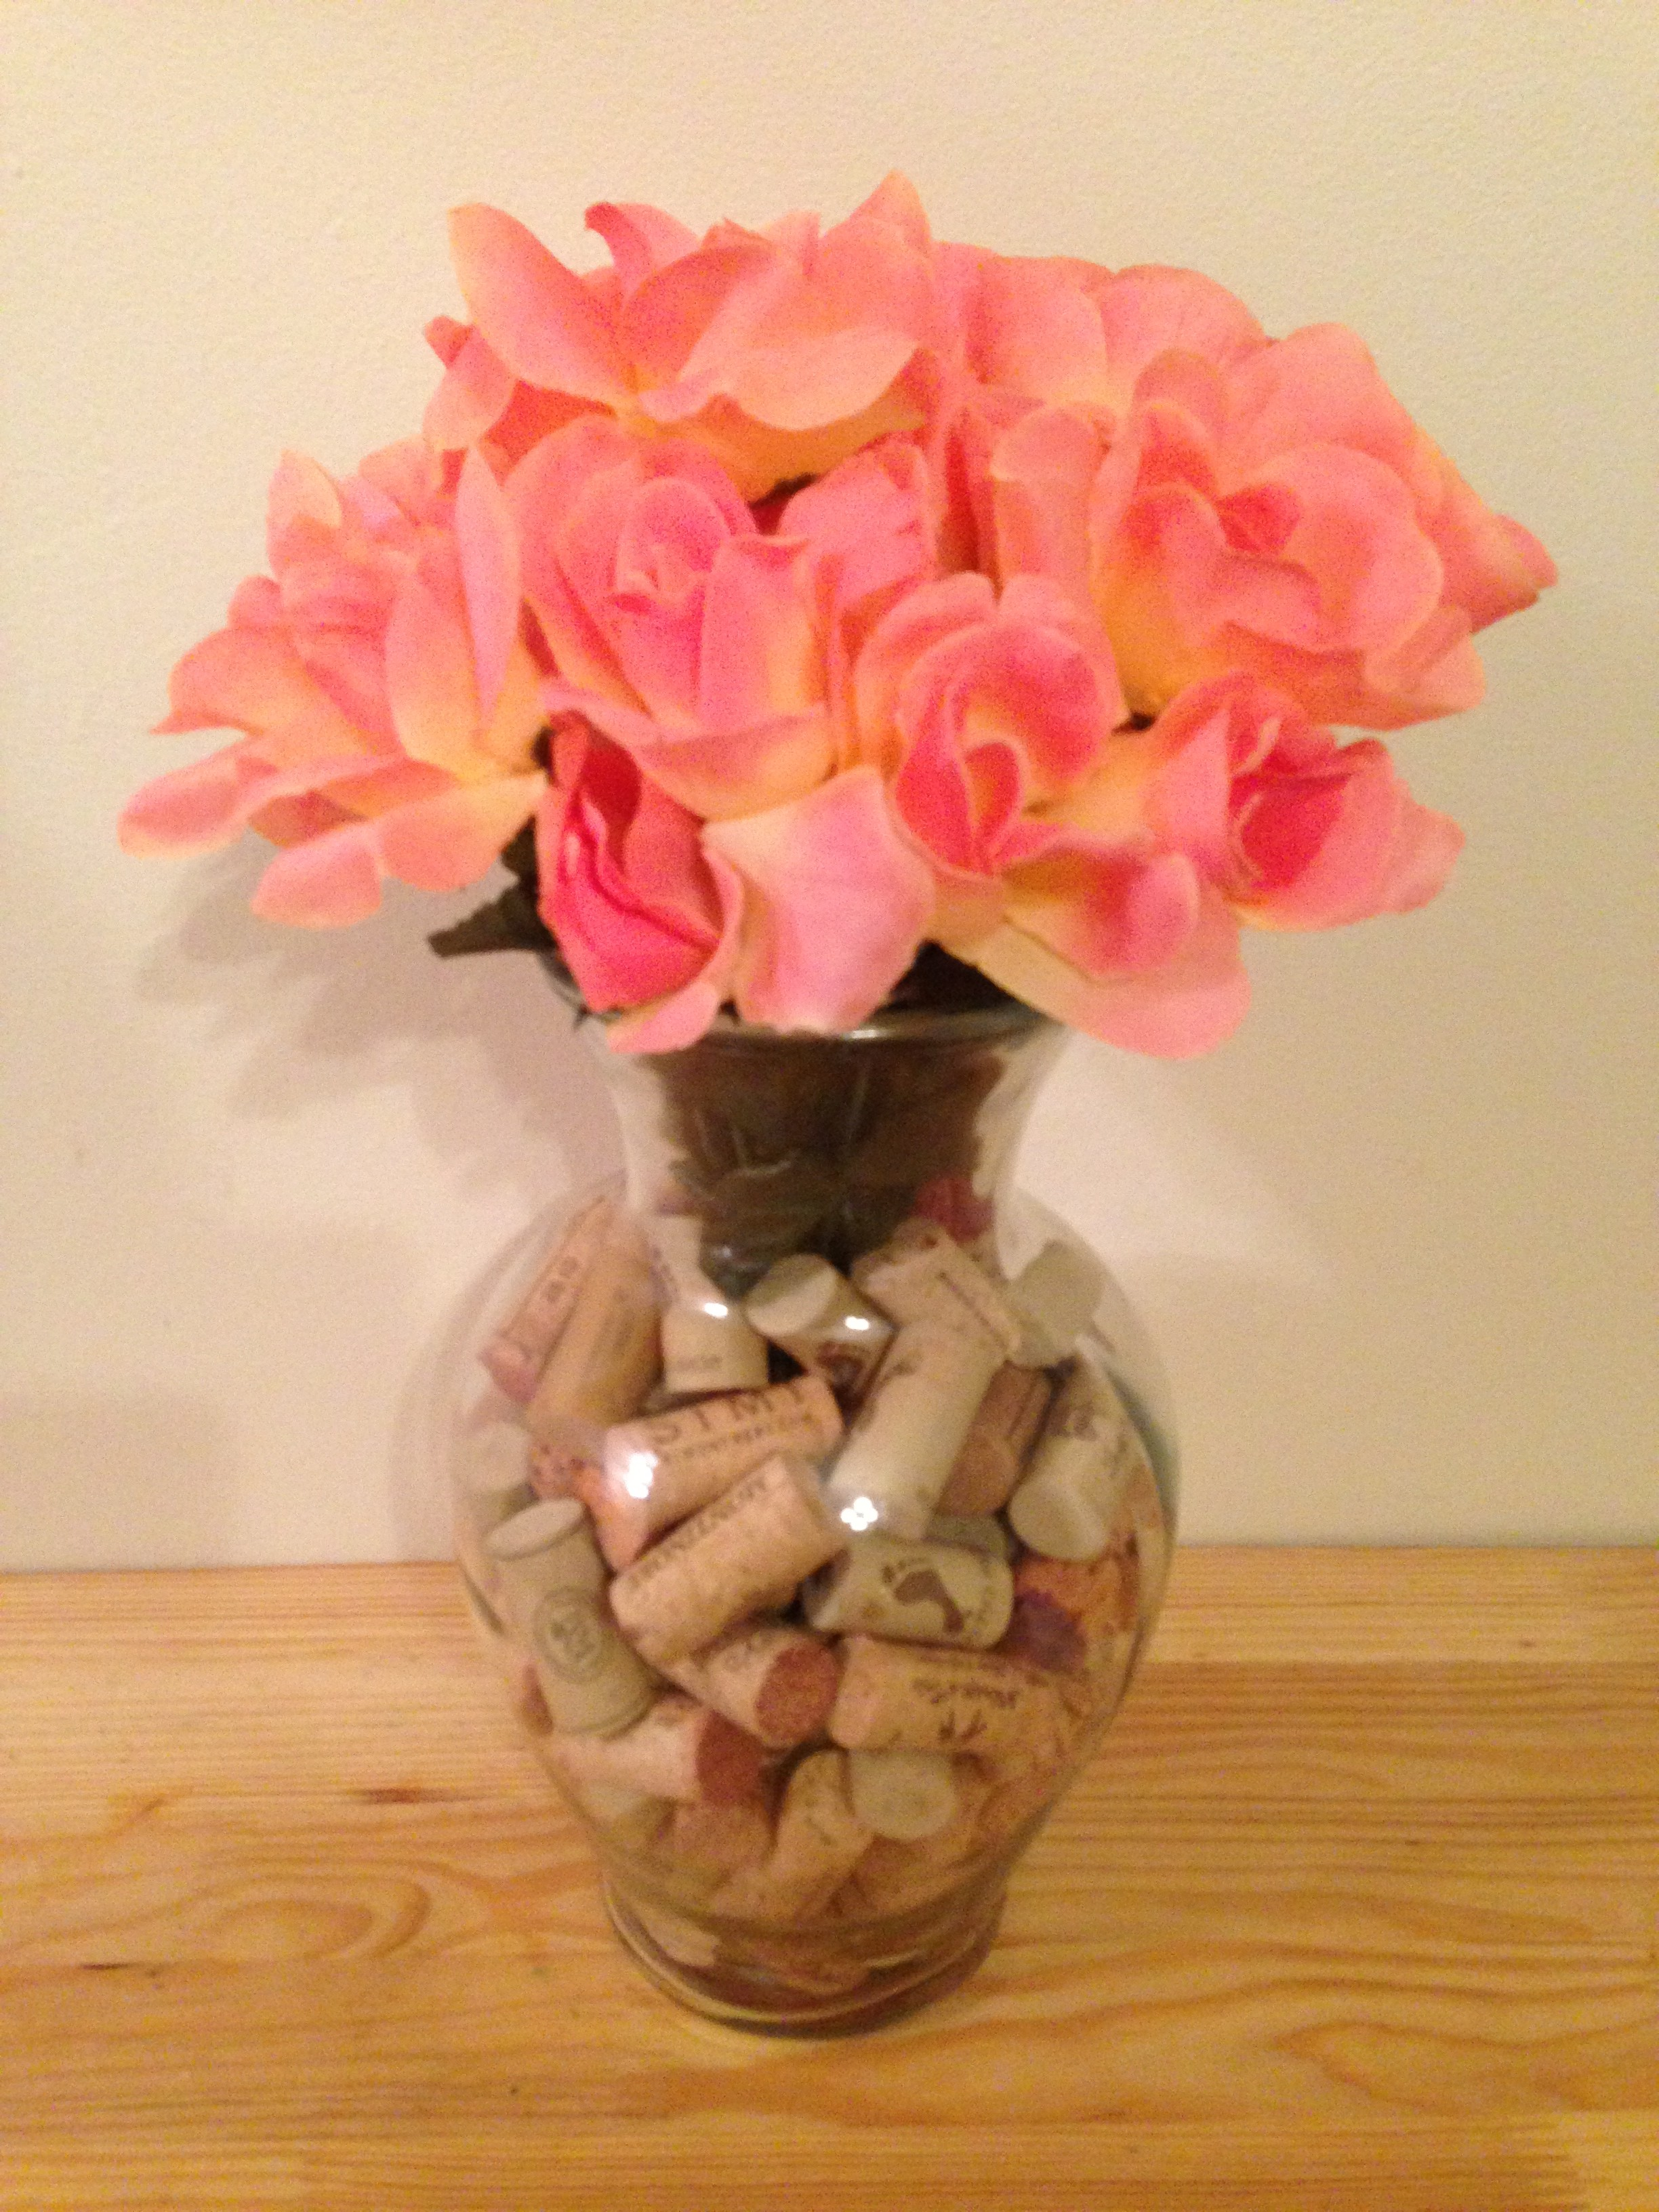 Diy wine cork vase decor eat teach laugh craft wine cork vase reviewsmspy